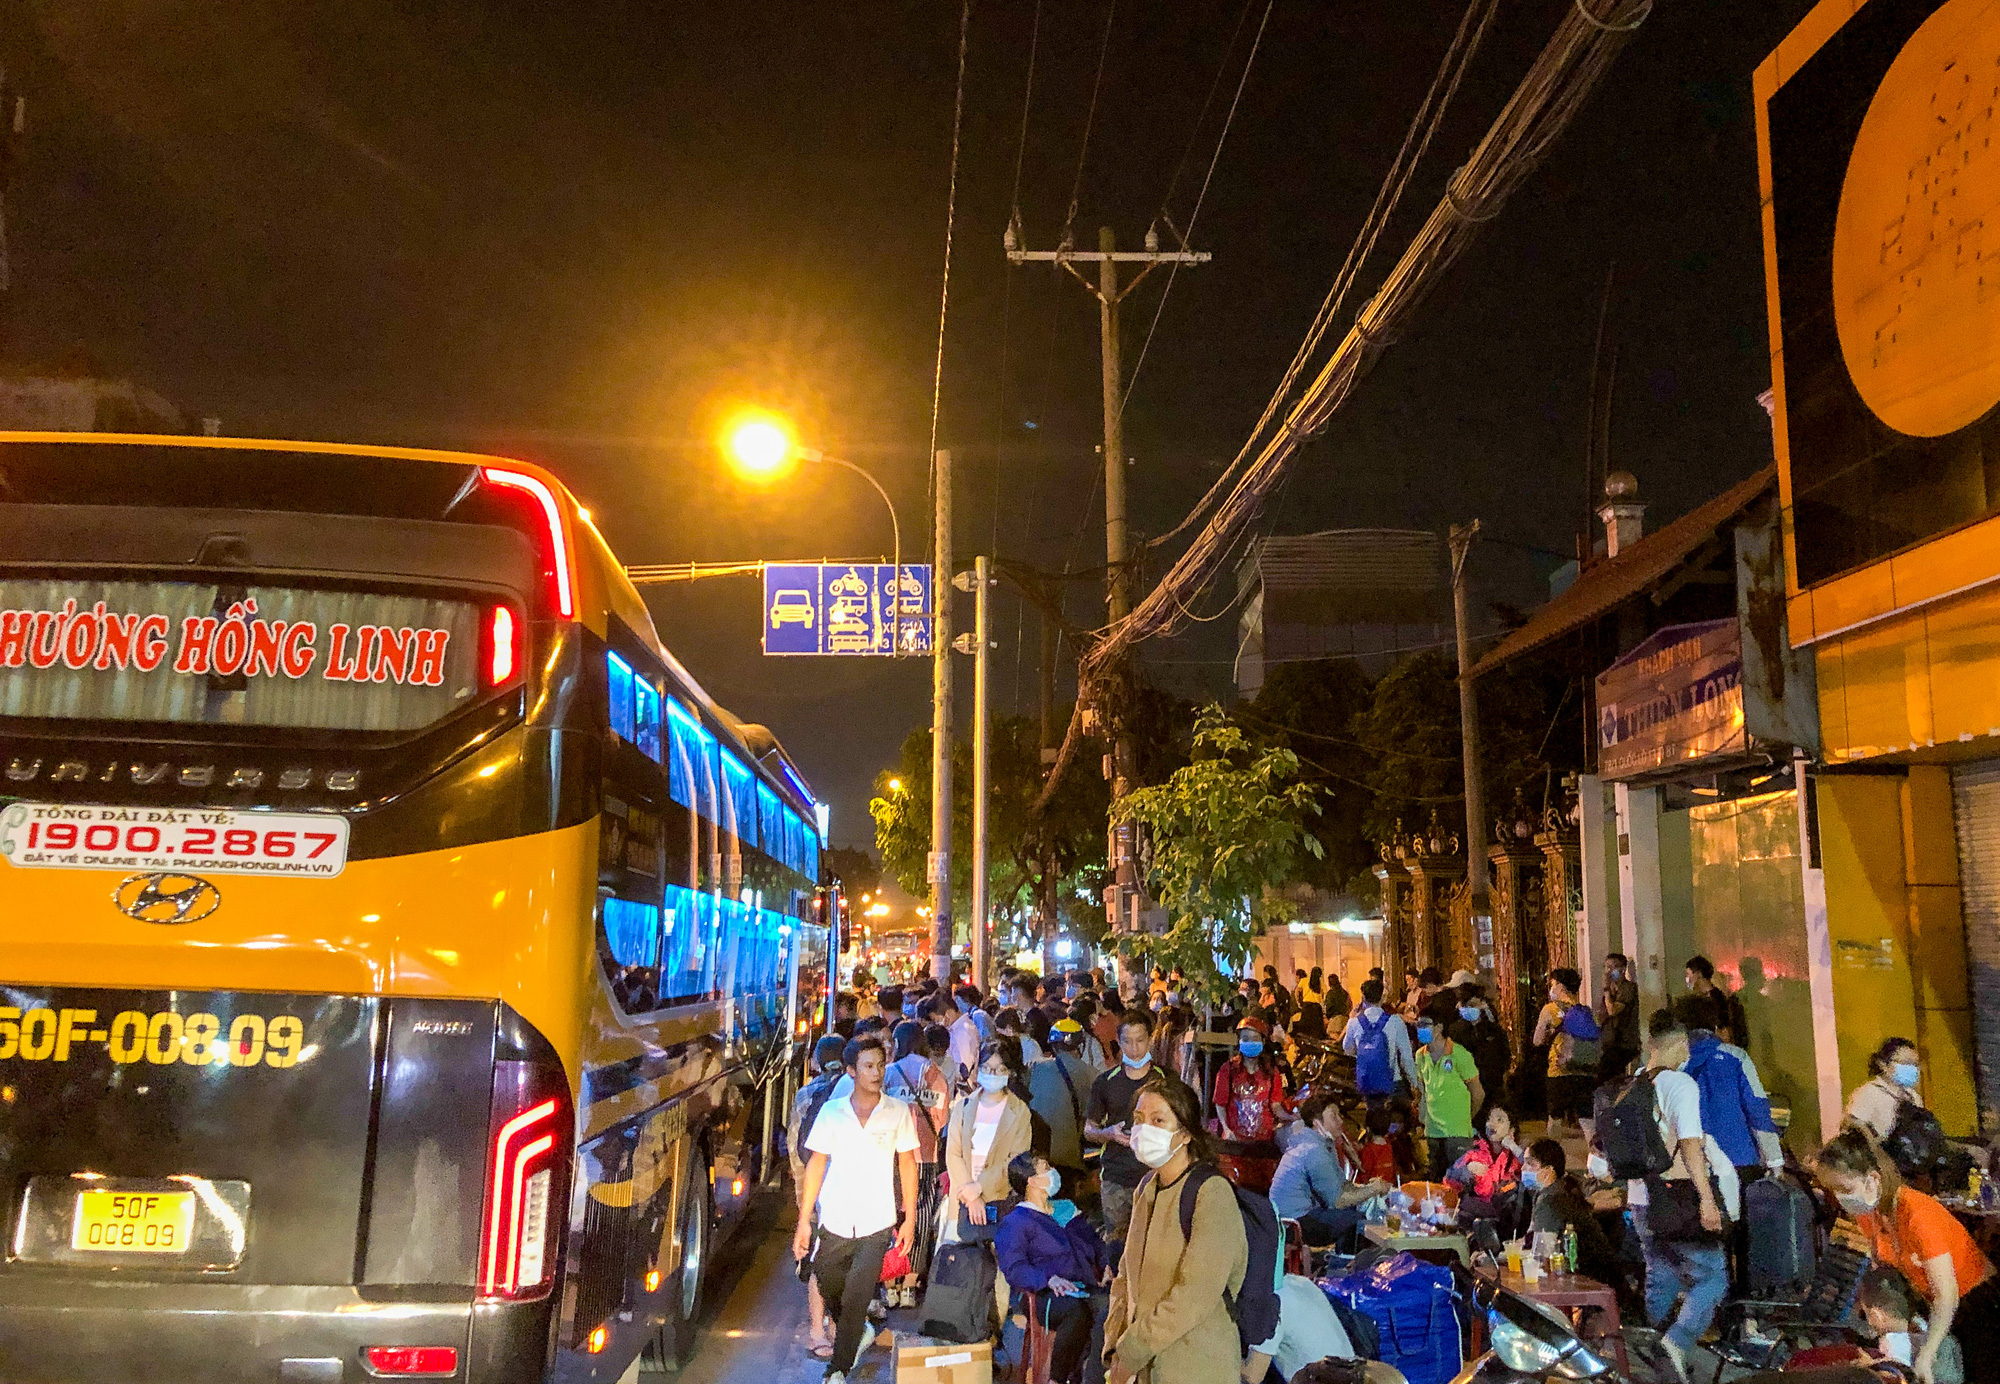 Horrific congestion occurs at Ho Chi Minh City bus station as holiday begins